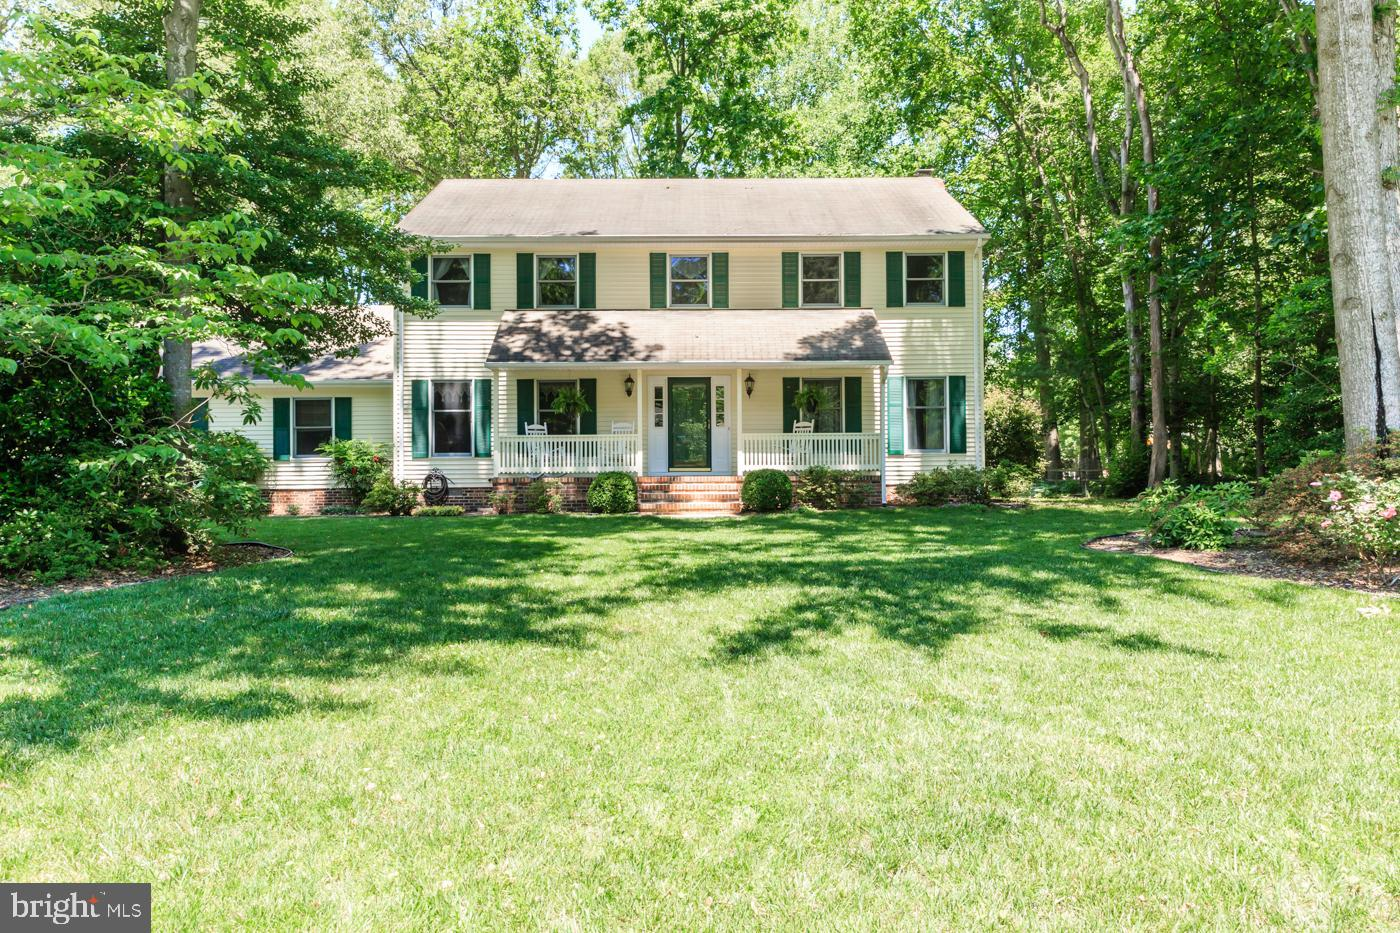 Lovely 4 bedroom, 2 1/2 bath home. Bedrooms are all large. Beautiful hardwood floors. Brick fireplac